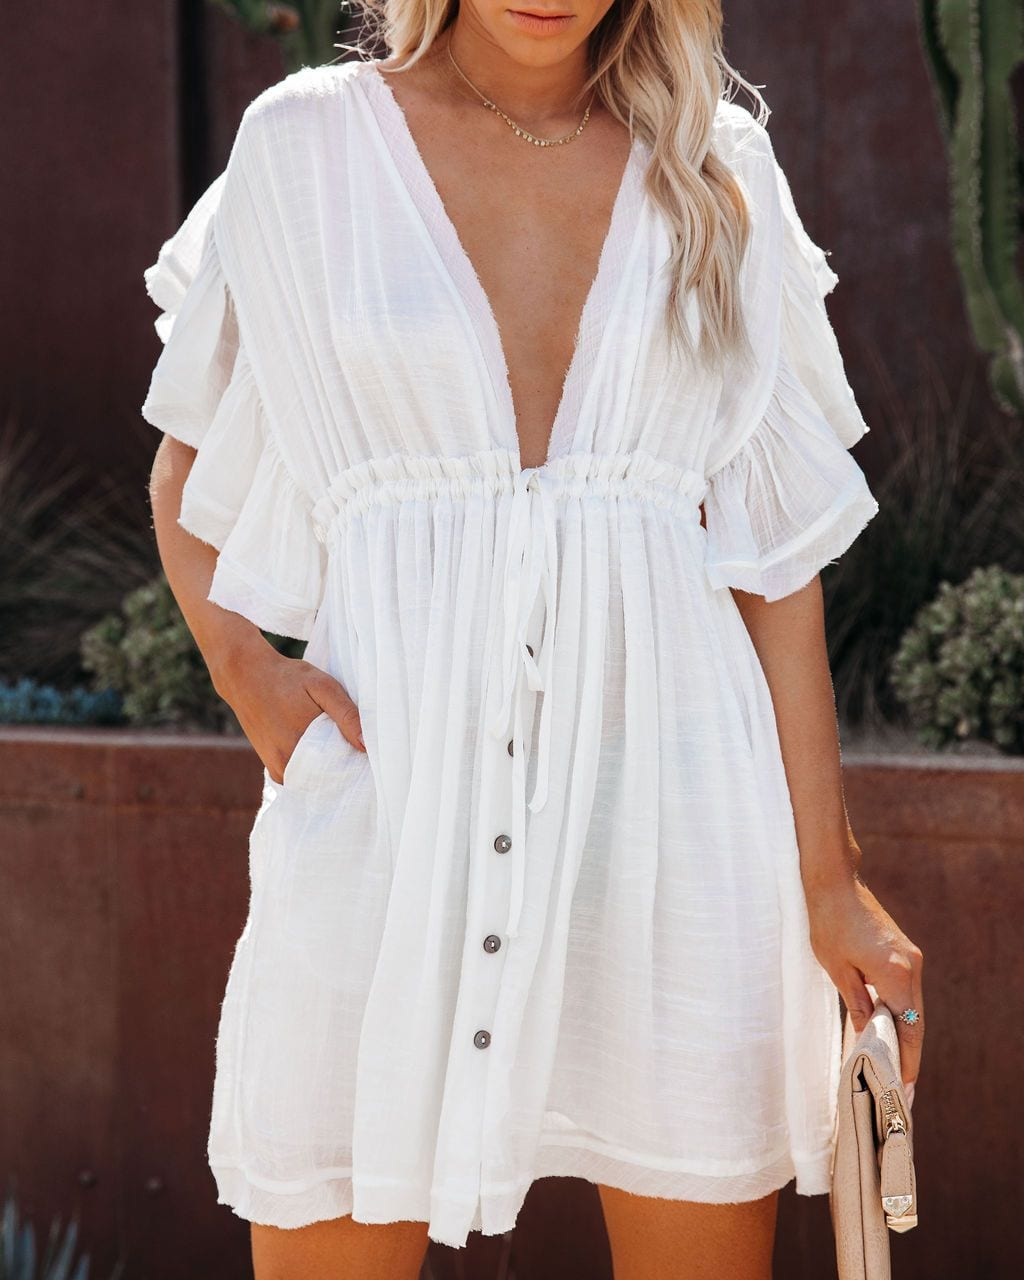 2021 Bikini Cover-ups White Tunic Sexy V-neck Butterfly Sleeve Summer Beach Wear Mini Dress Plus Size Women Swimsuit Cover Up D0